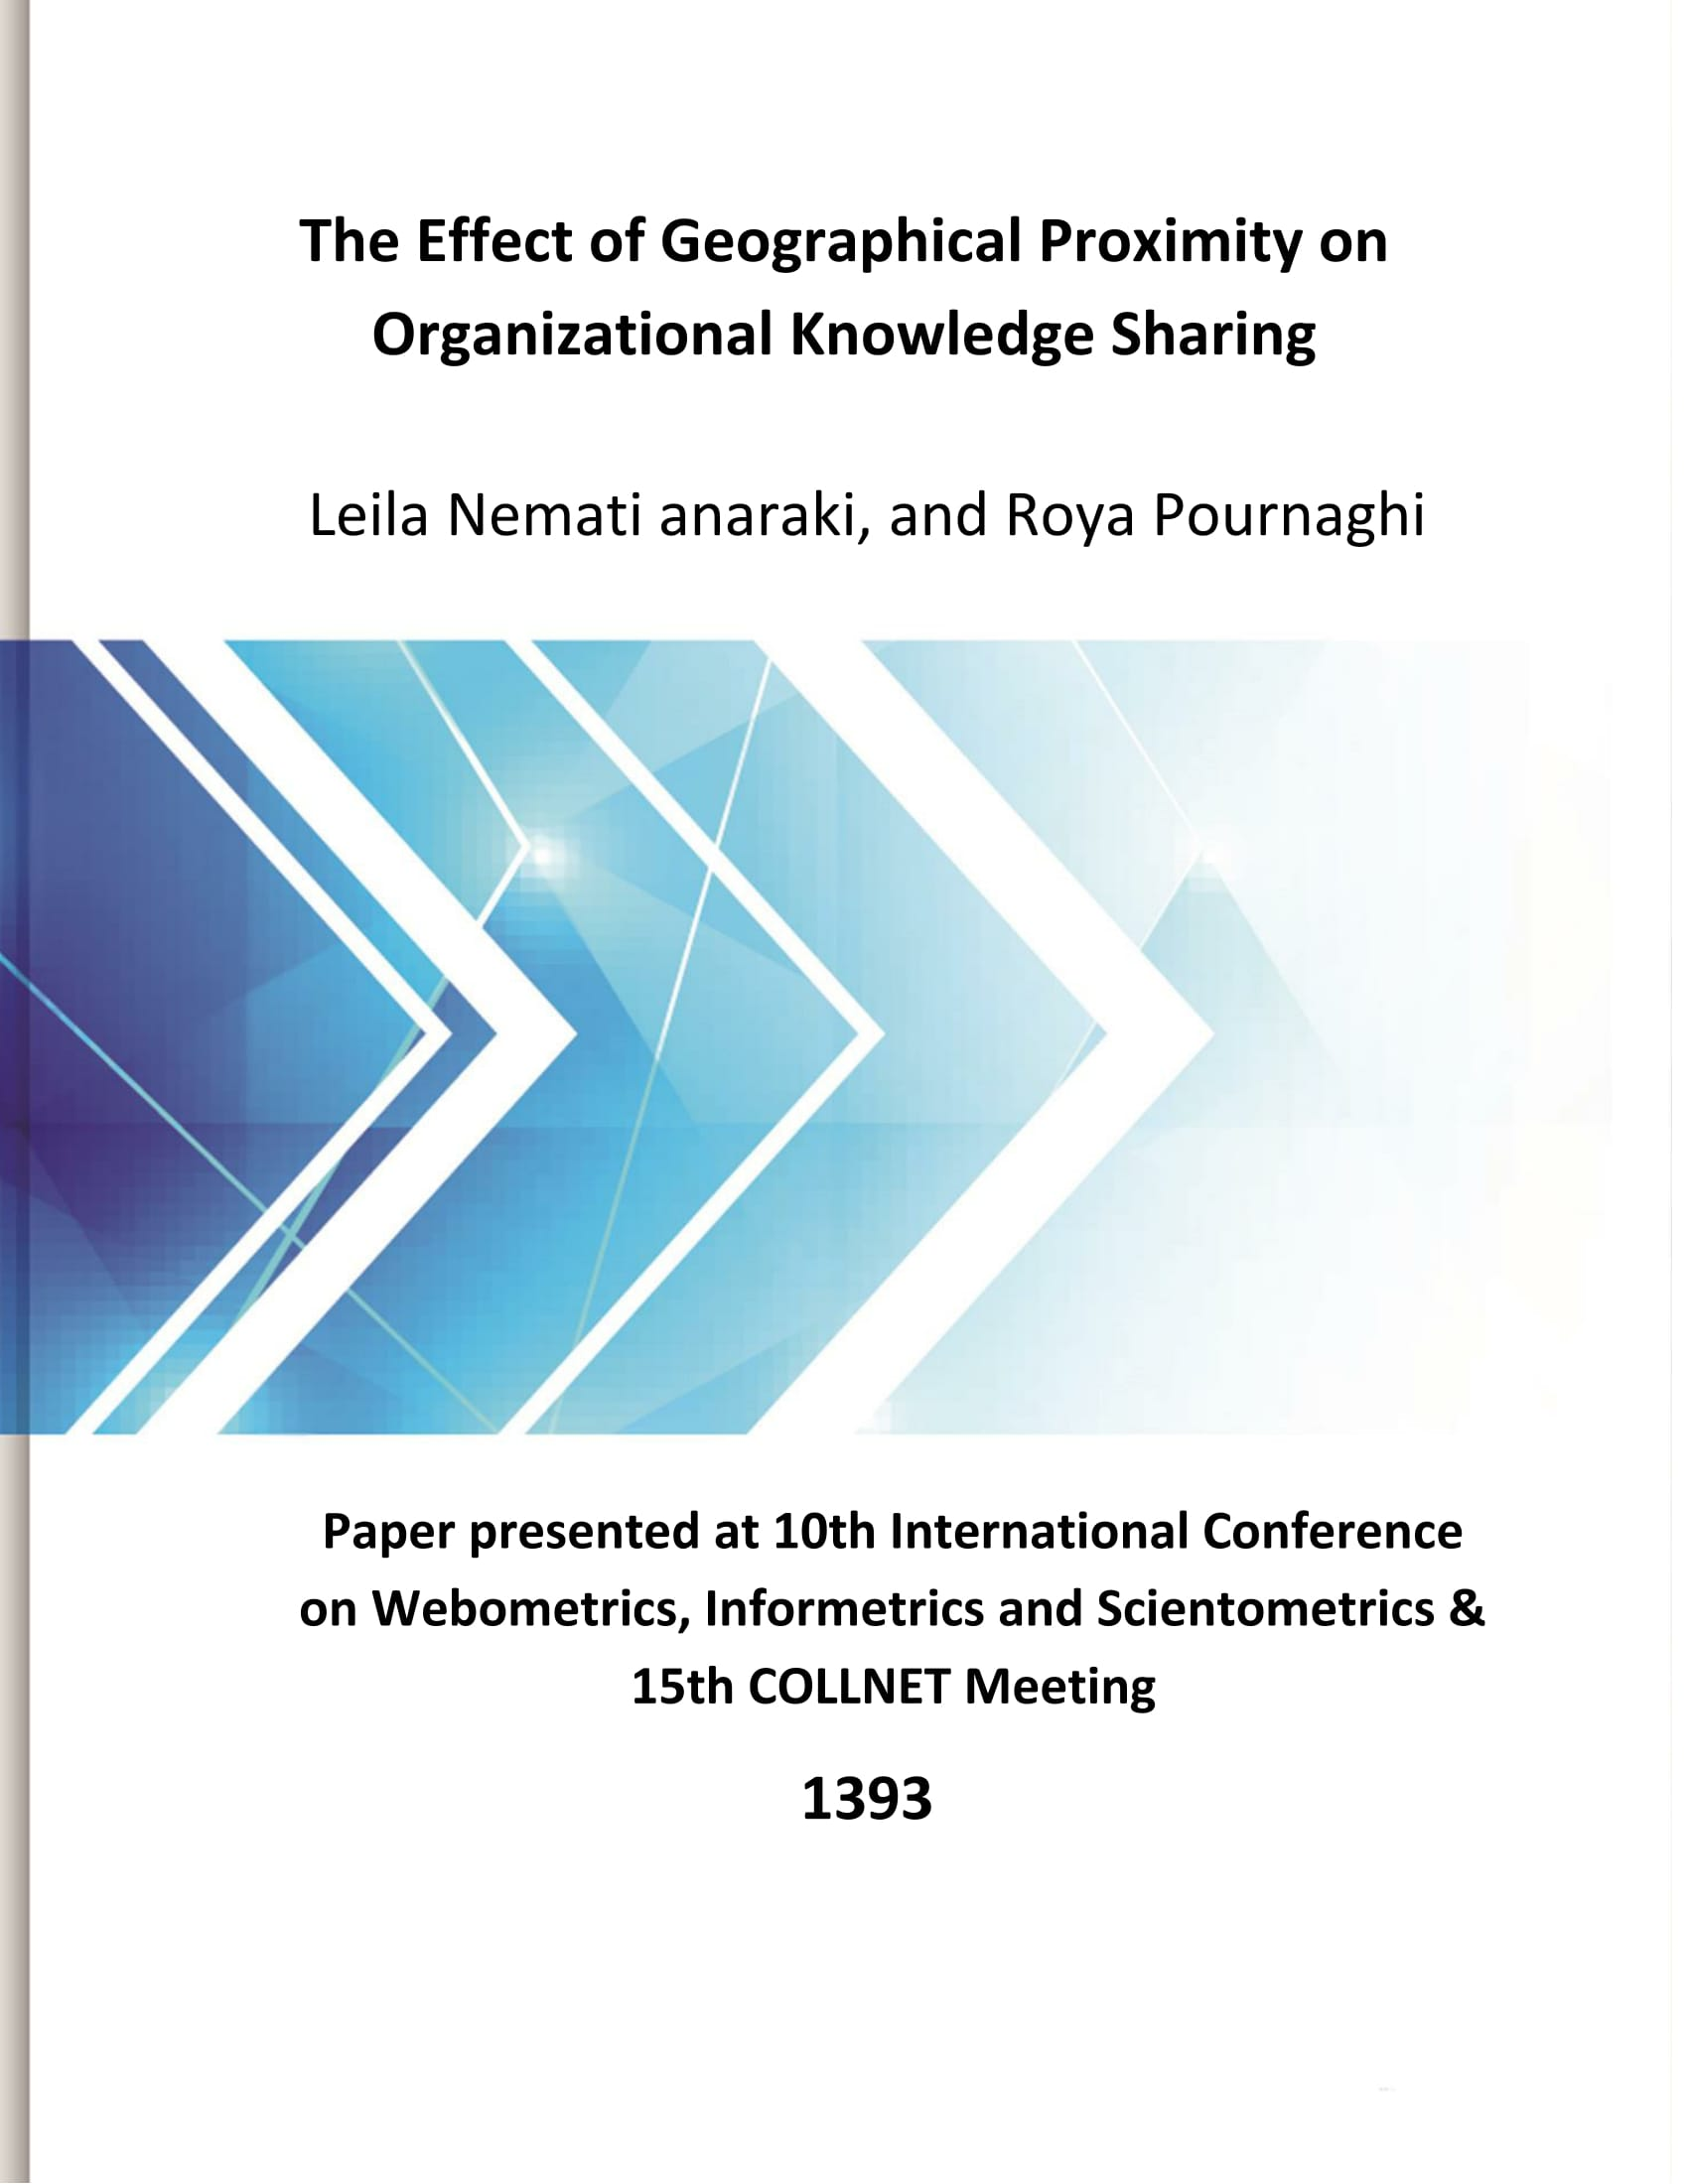 The Effect of Geographical Proximity on Organizational Knowledge Sharing